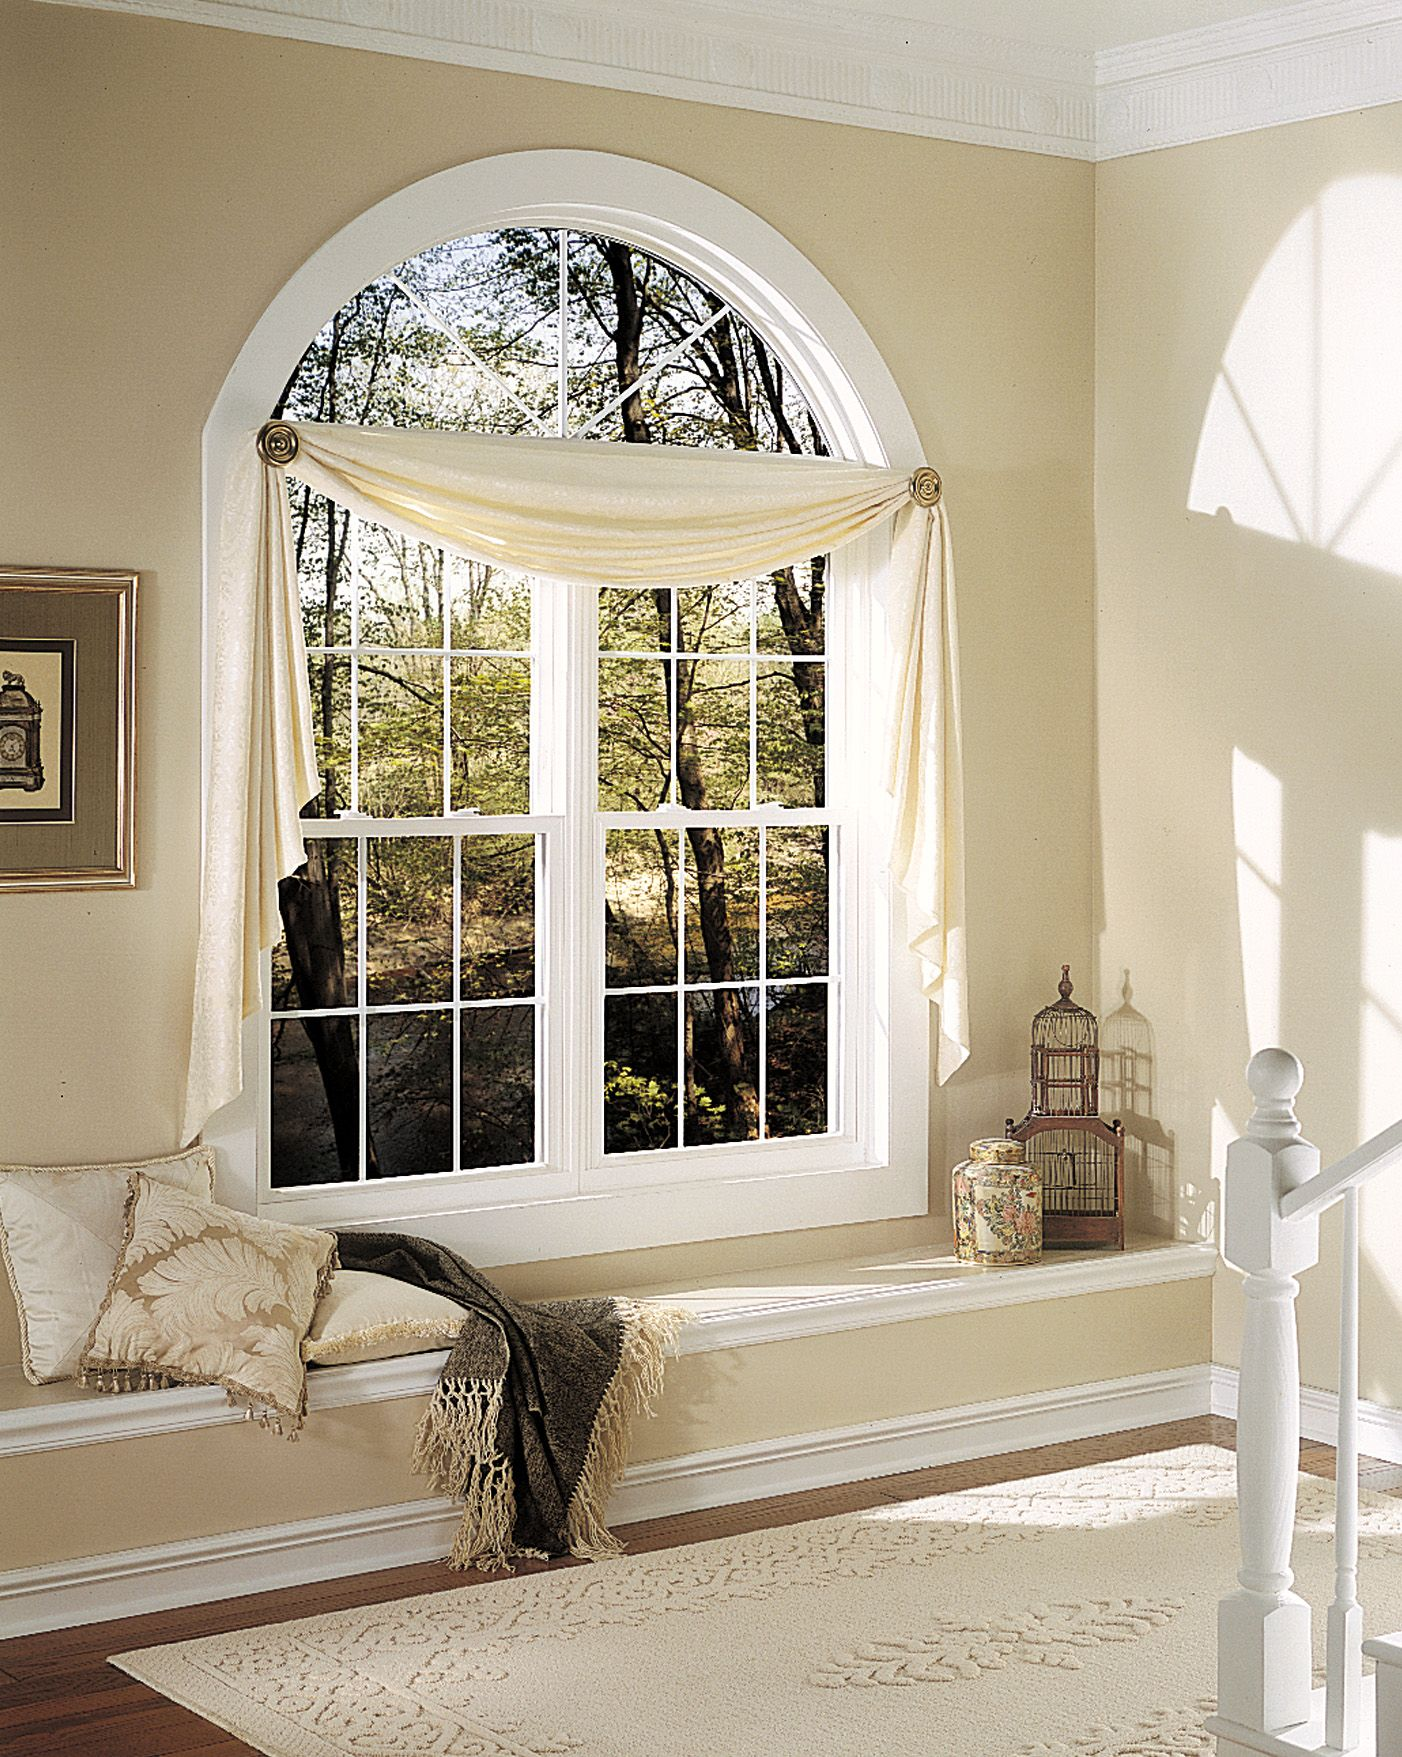 Pin By Jennifer Wu On House Decorating Curtains For Arched Windows Modern Window Design Arched Window Treatments